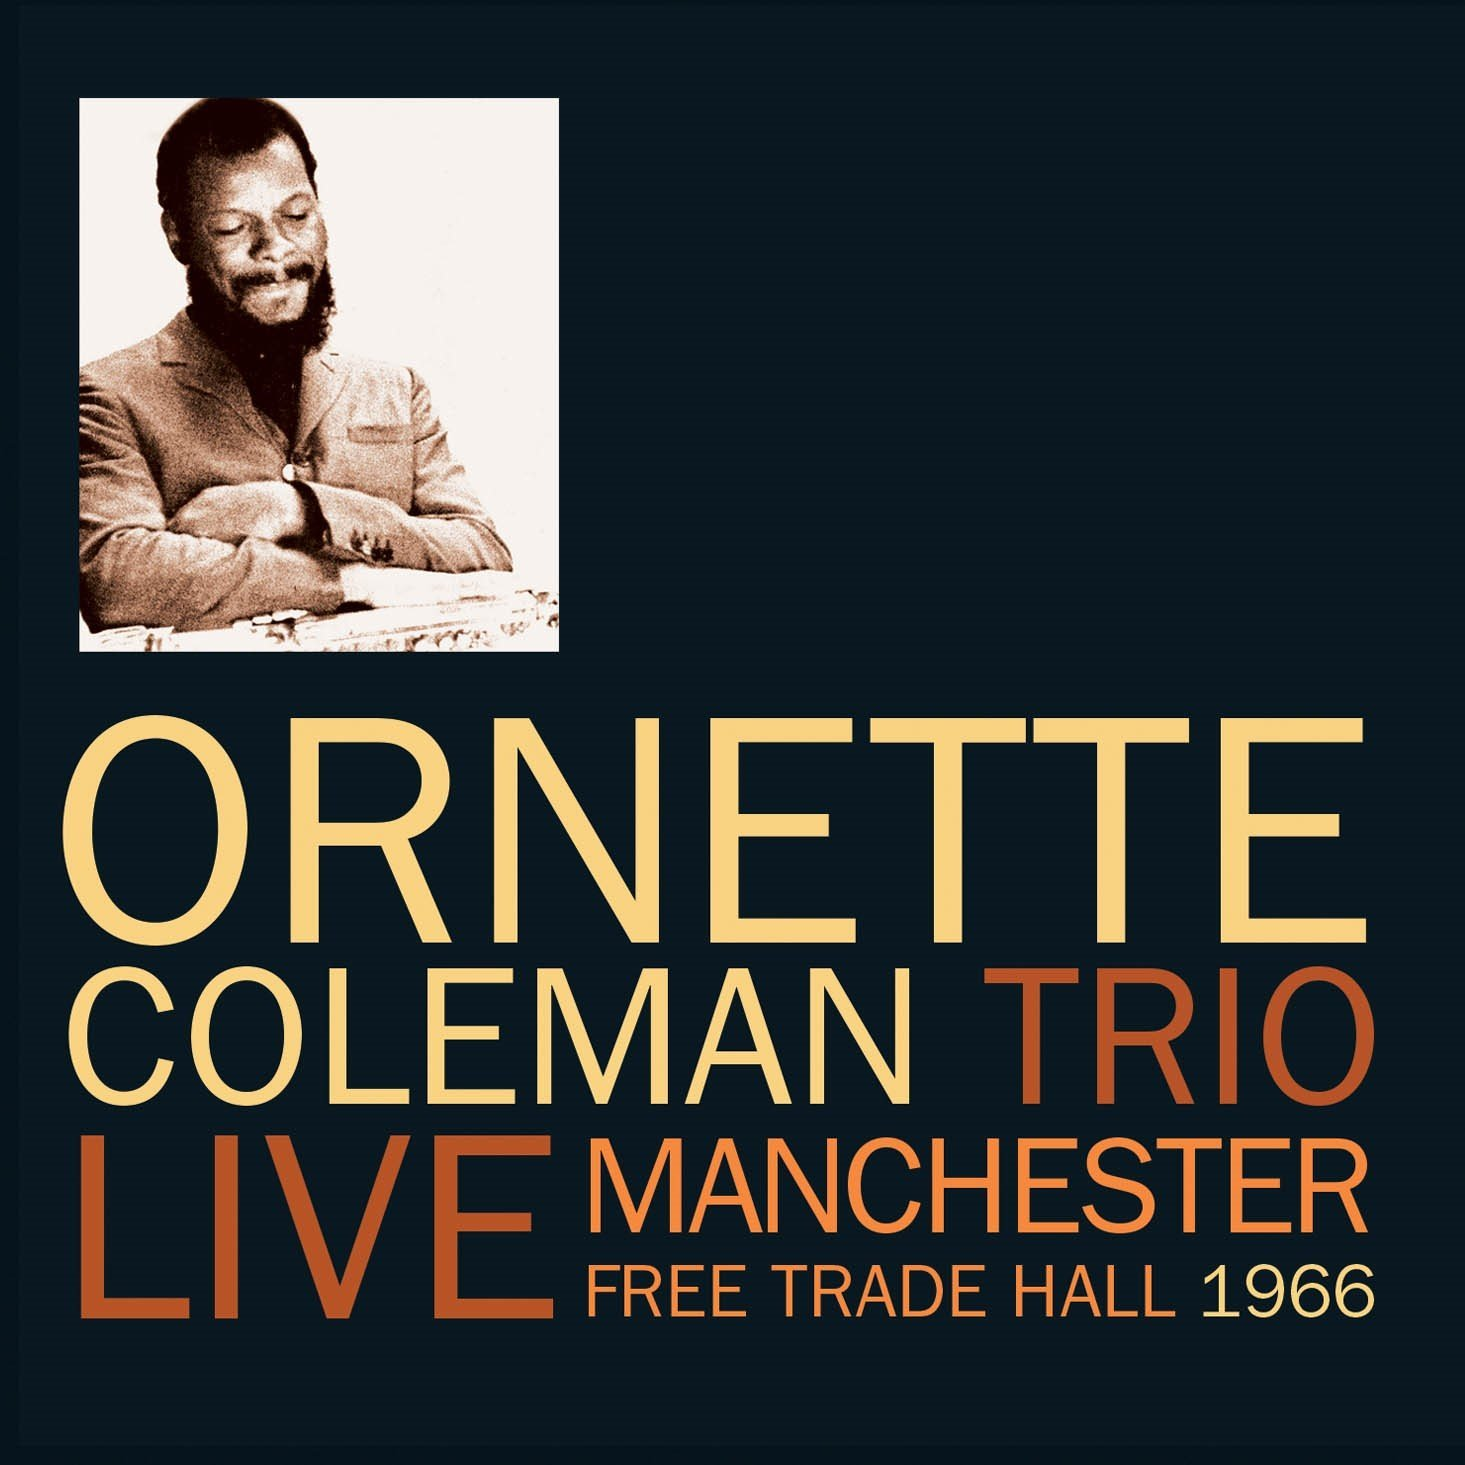 ORNETTE COLEMAN - Manchester Free Trade Hall 1966 cover